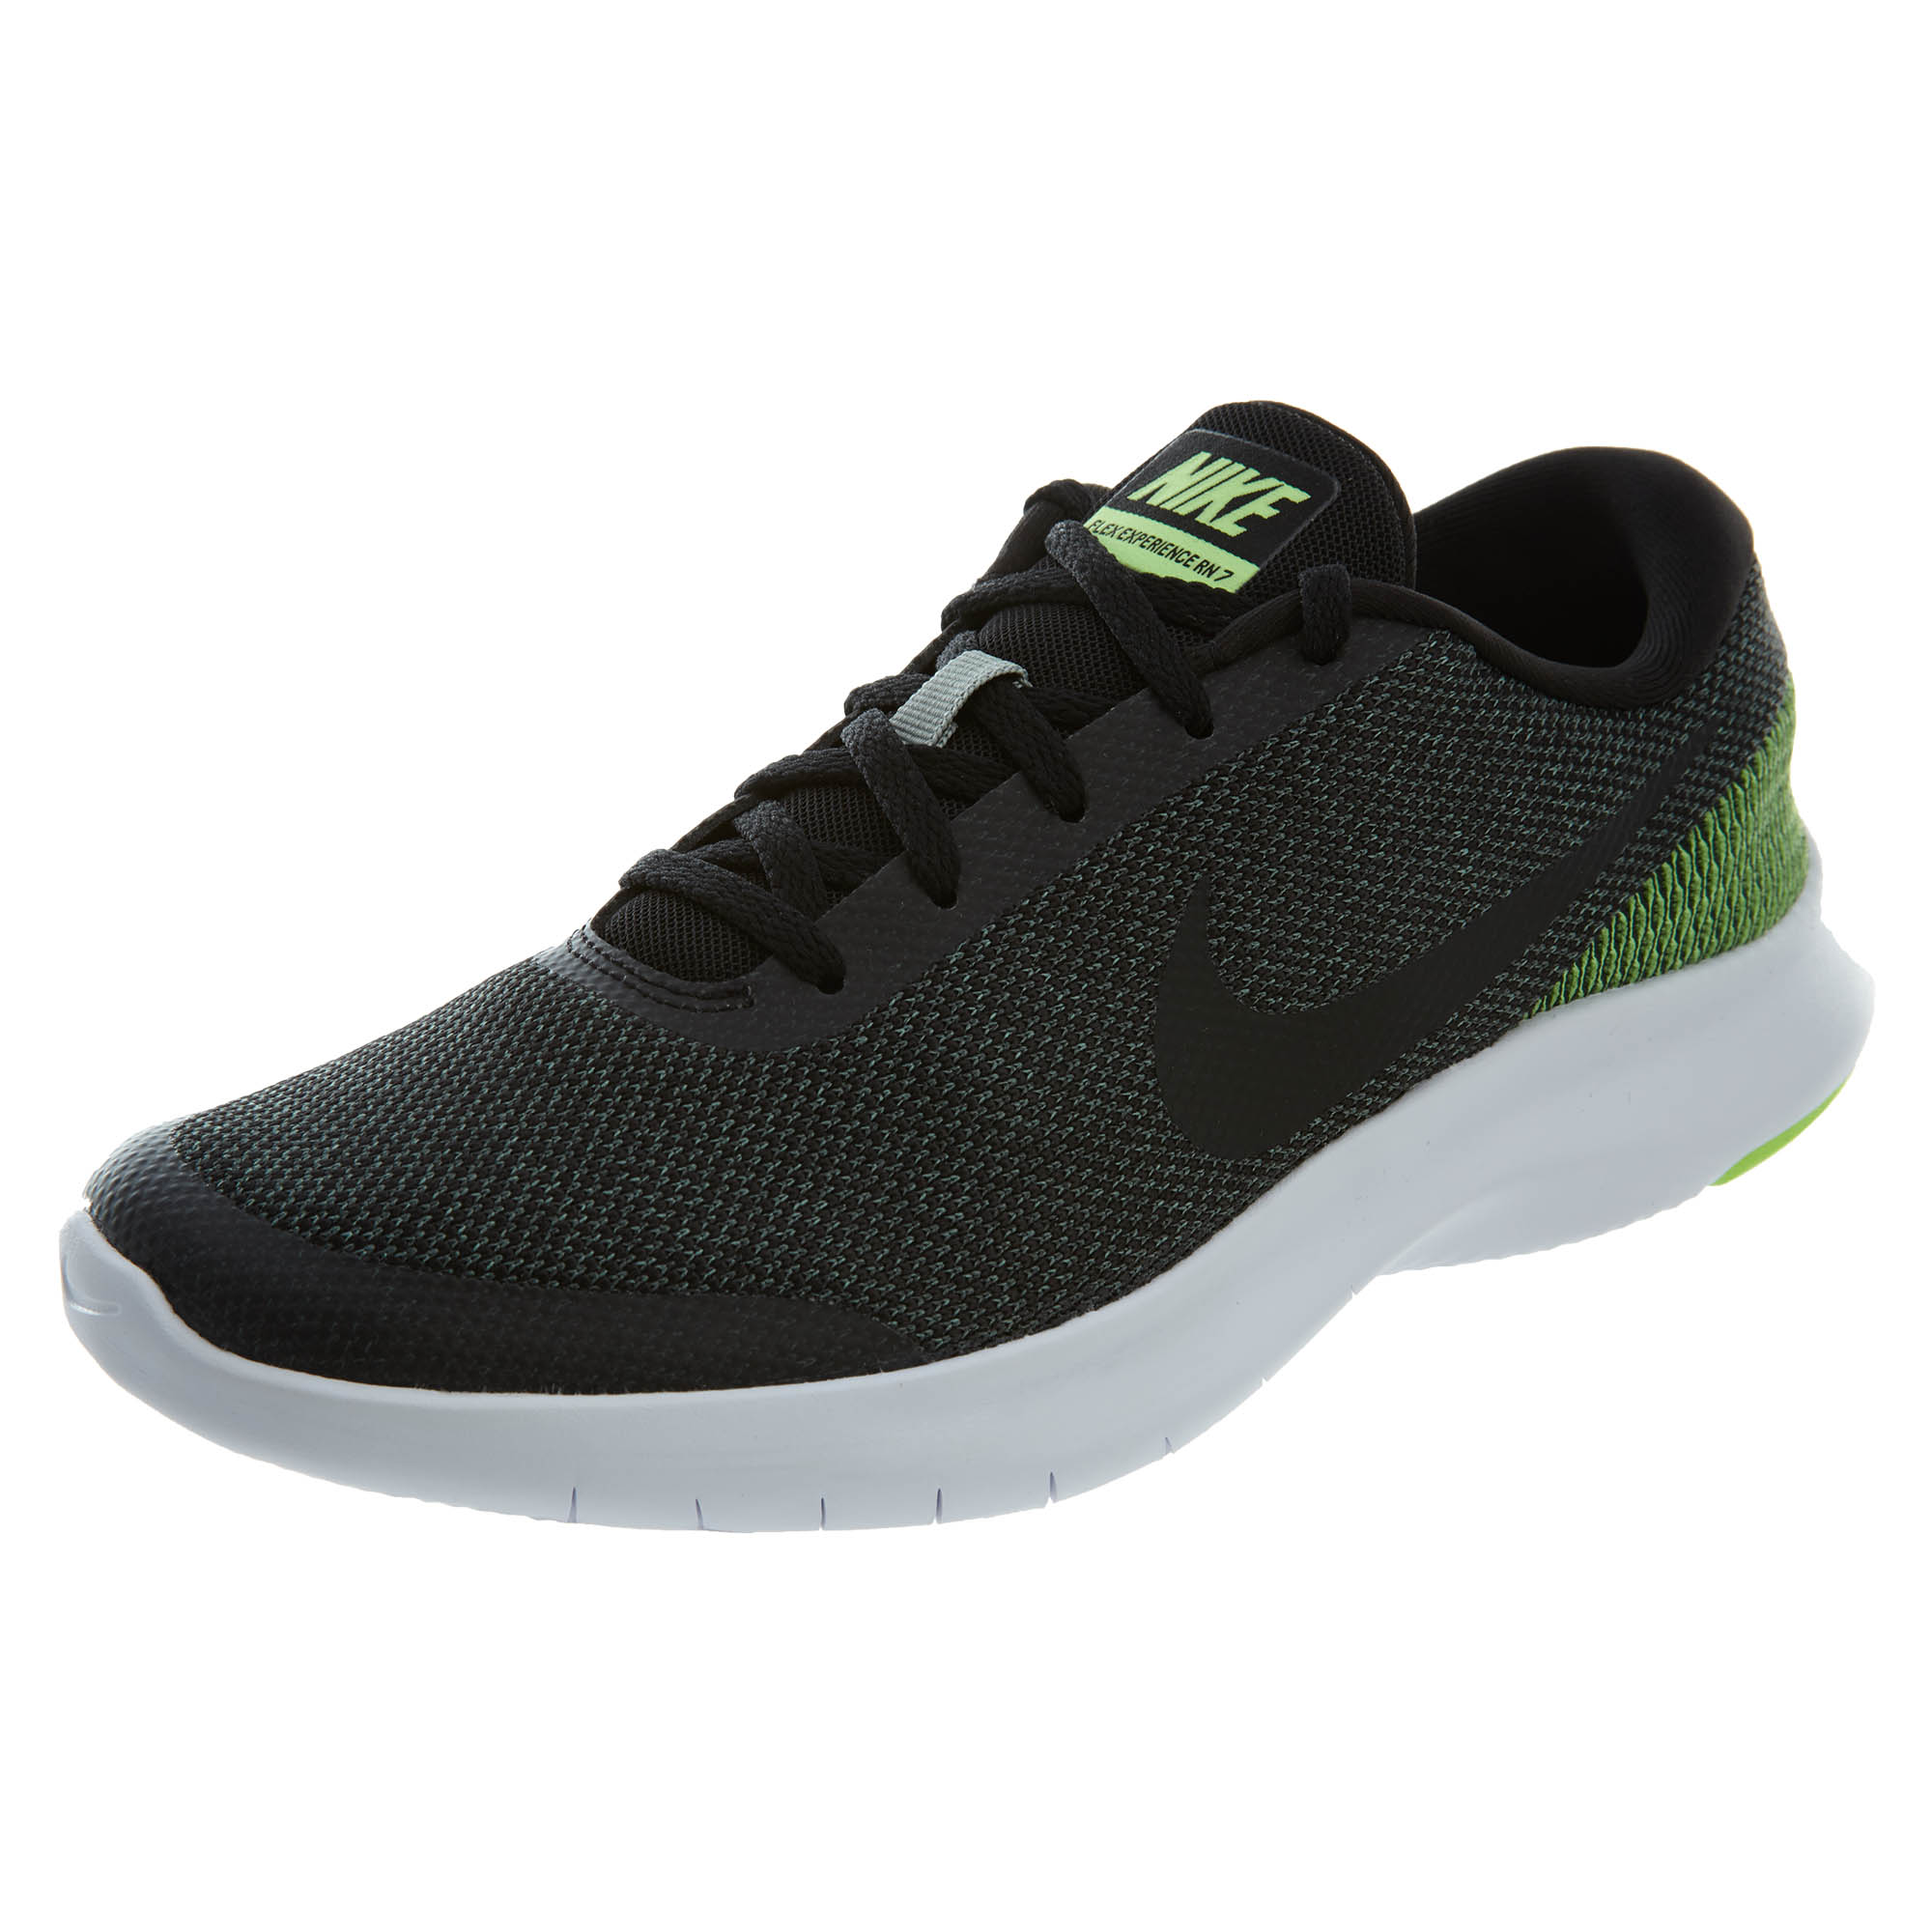 b1198293a83 Details about Nike Mens Flex Experience RN 7 Running Shoes 908985-300